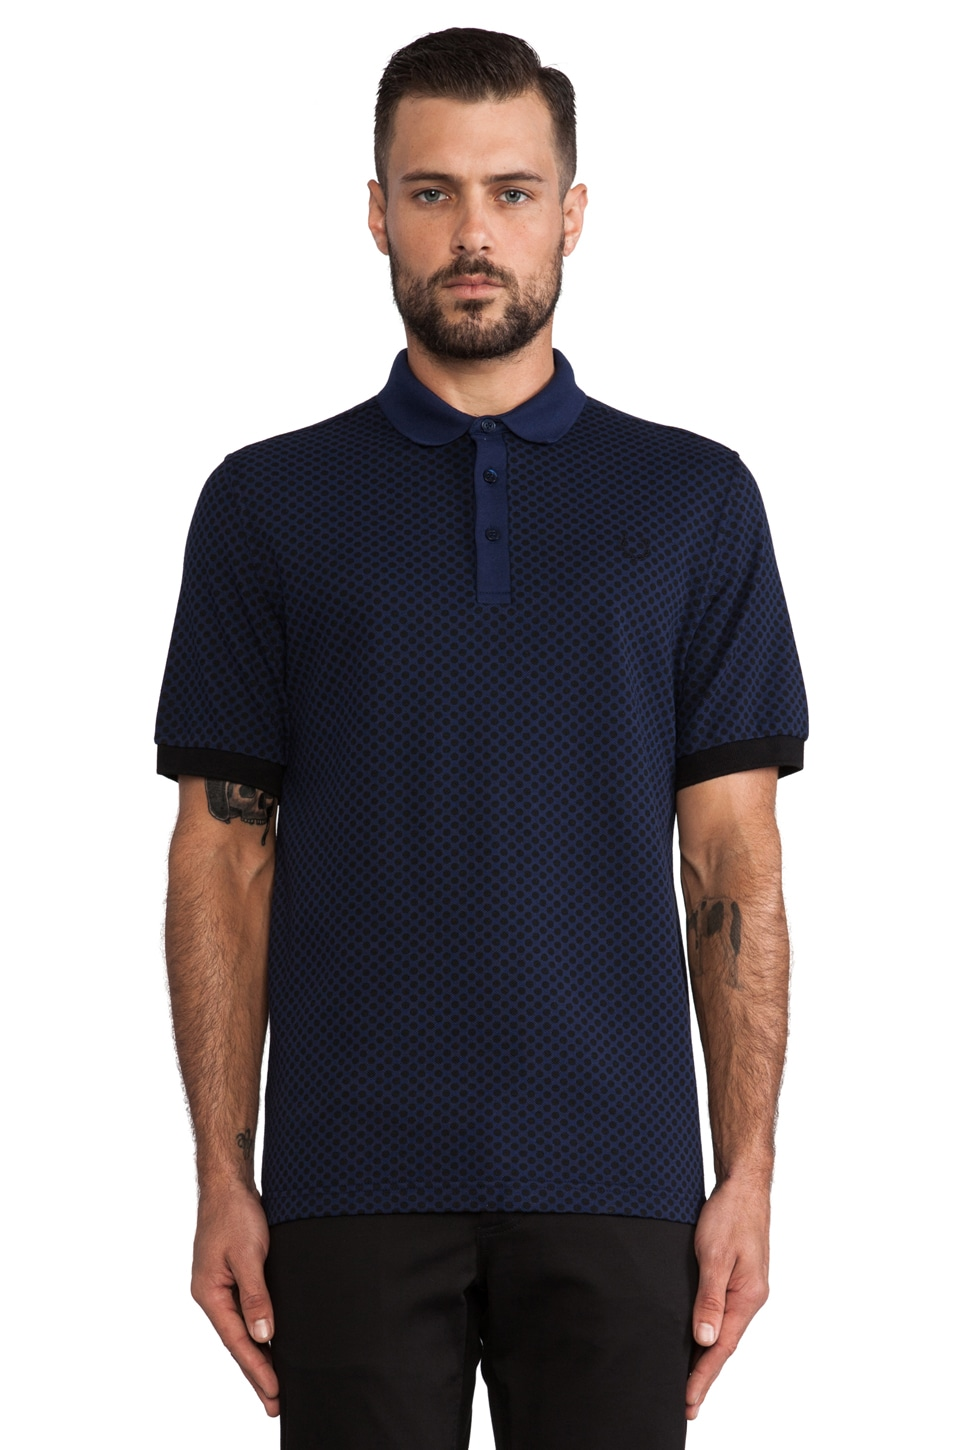 Fred Perry Laurel Wreath Industrial Dot Shirt in French Navy